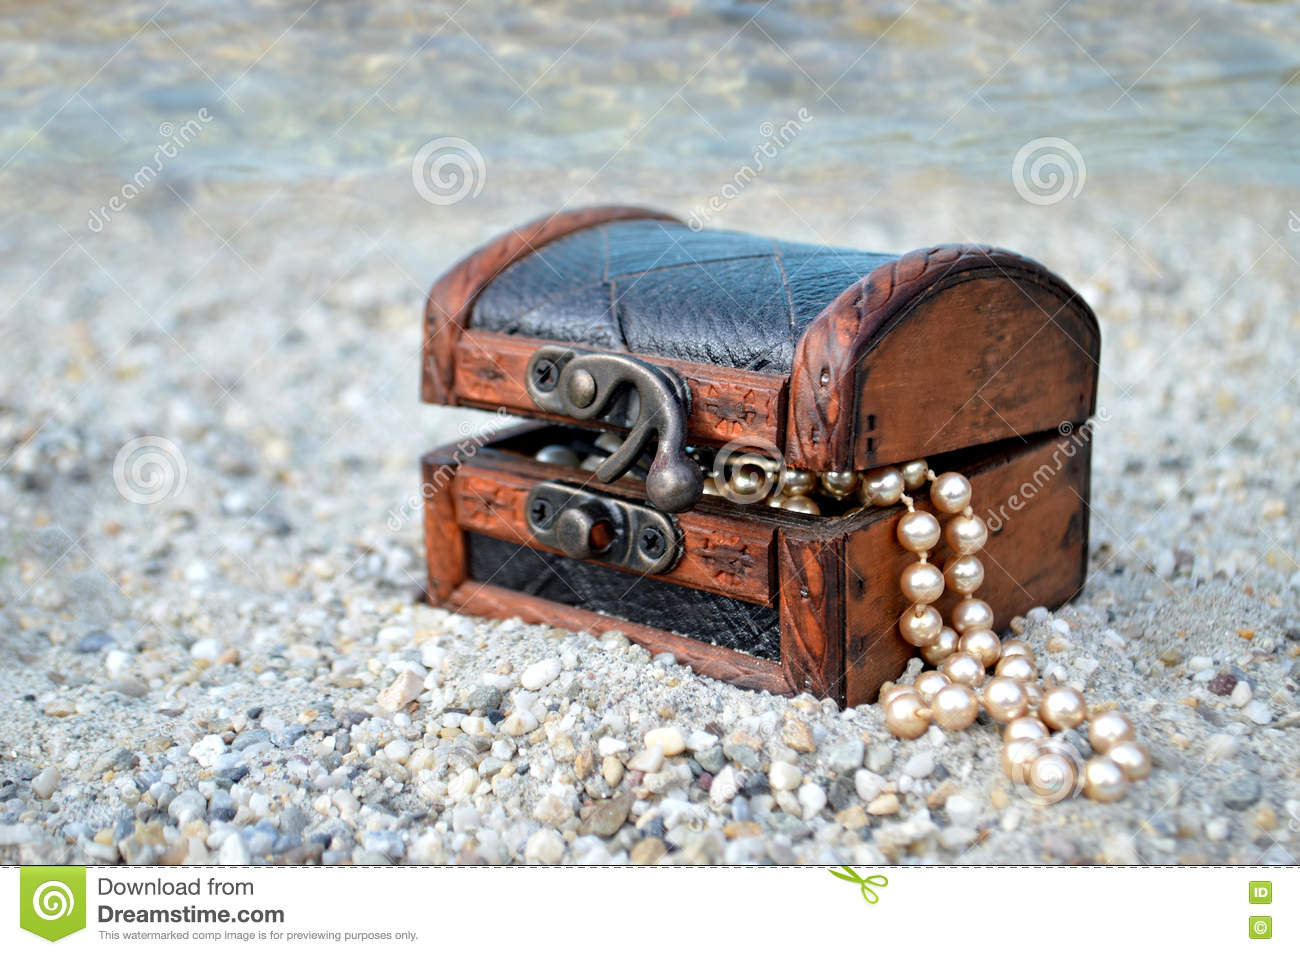 Toy Treasure Chest Beach : Treasure chest on the beach stock image